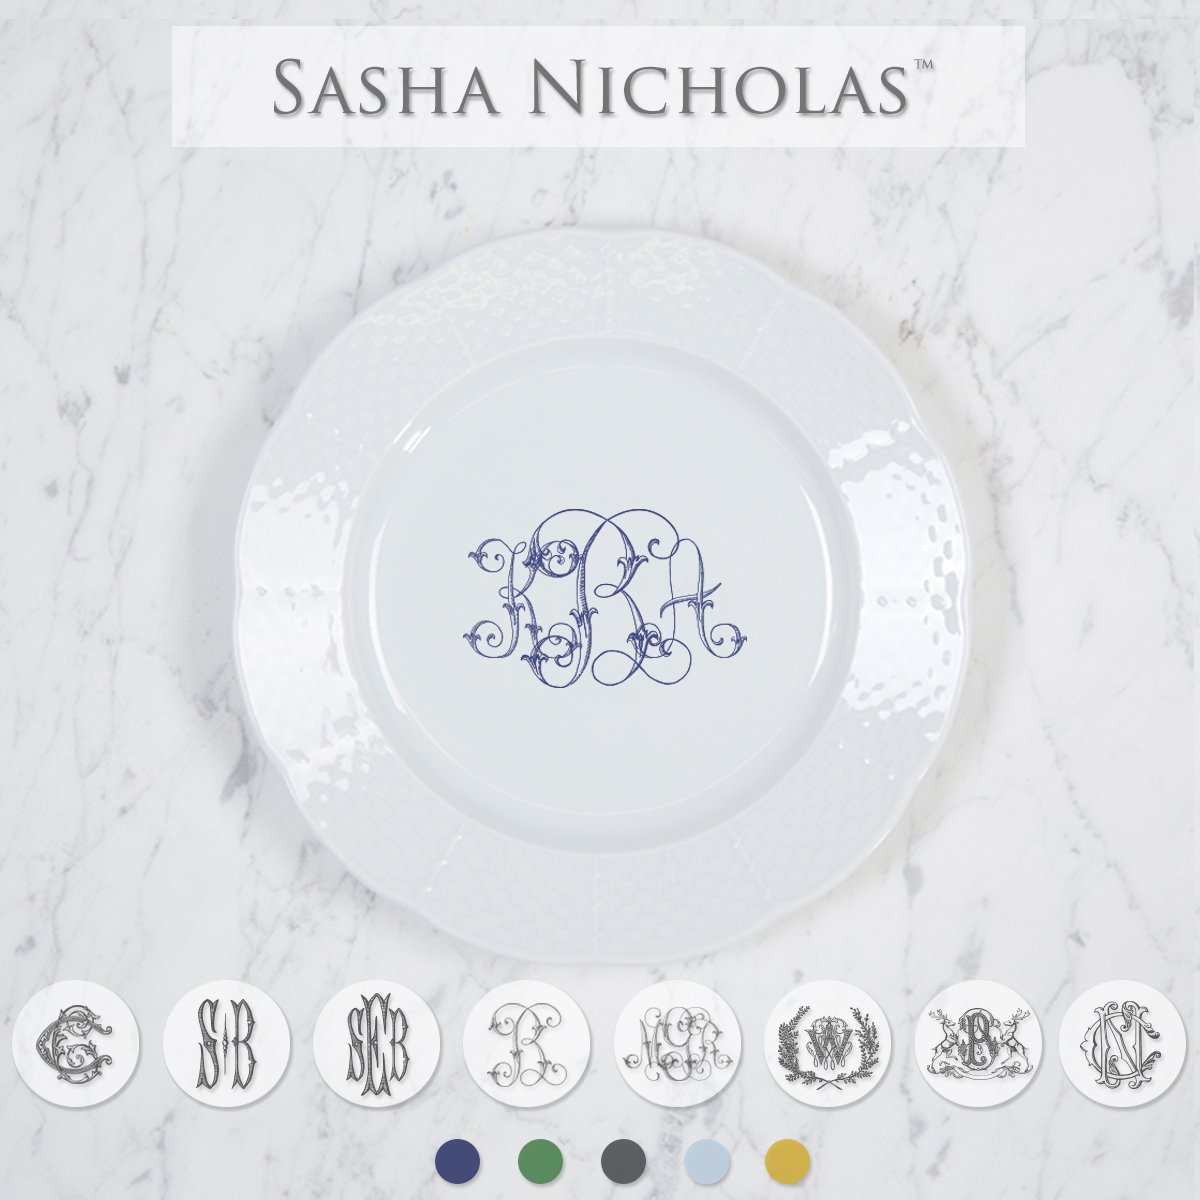 A beautiful addition to your dinnerware collection and to adorn your tablescapes with. It makes the perfect gift for your wedding registry and looks amazing layered with Royal Copenhagen. Choose from their signature font styles or use a custom monogram or crest of your choice! | Sasha Nicholas's white porcelain weave salad plate